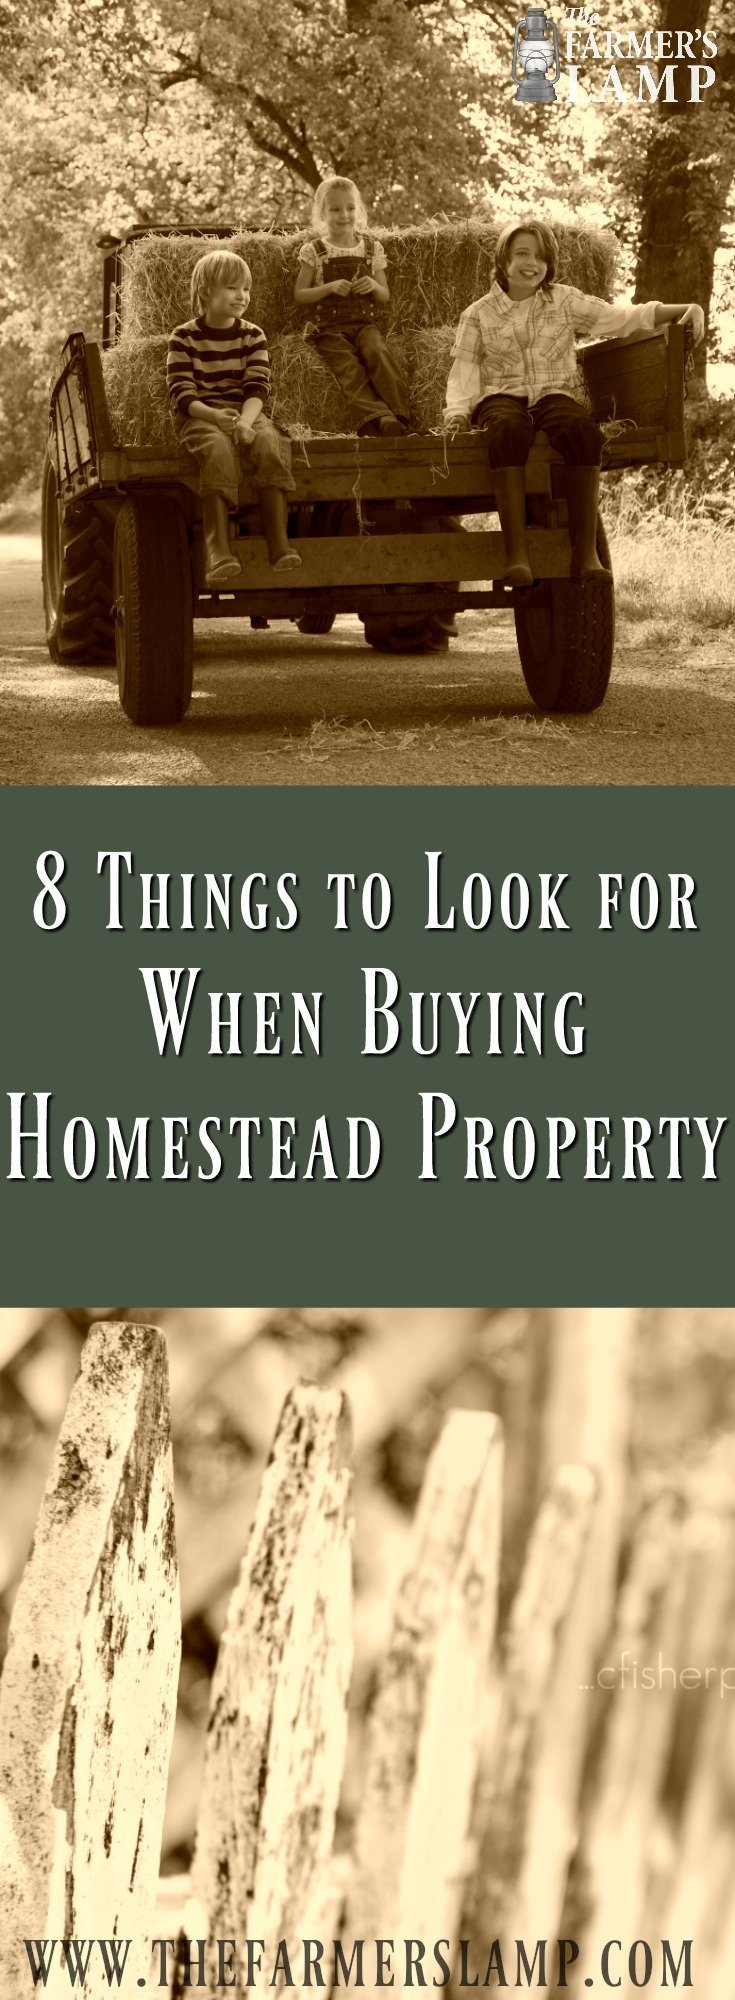 8 Things to Look for When Buying Homestead Property